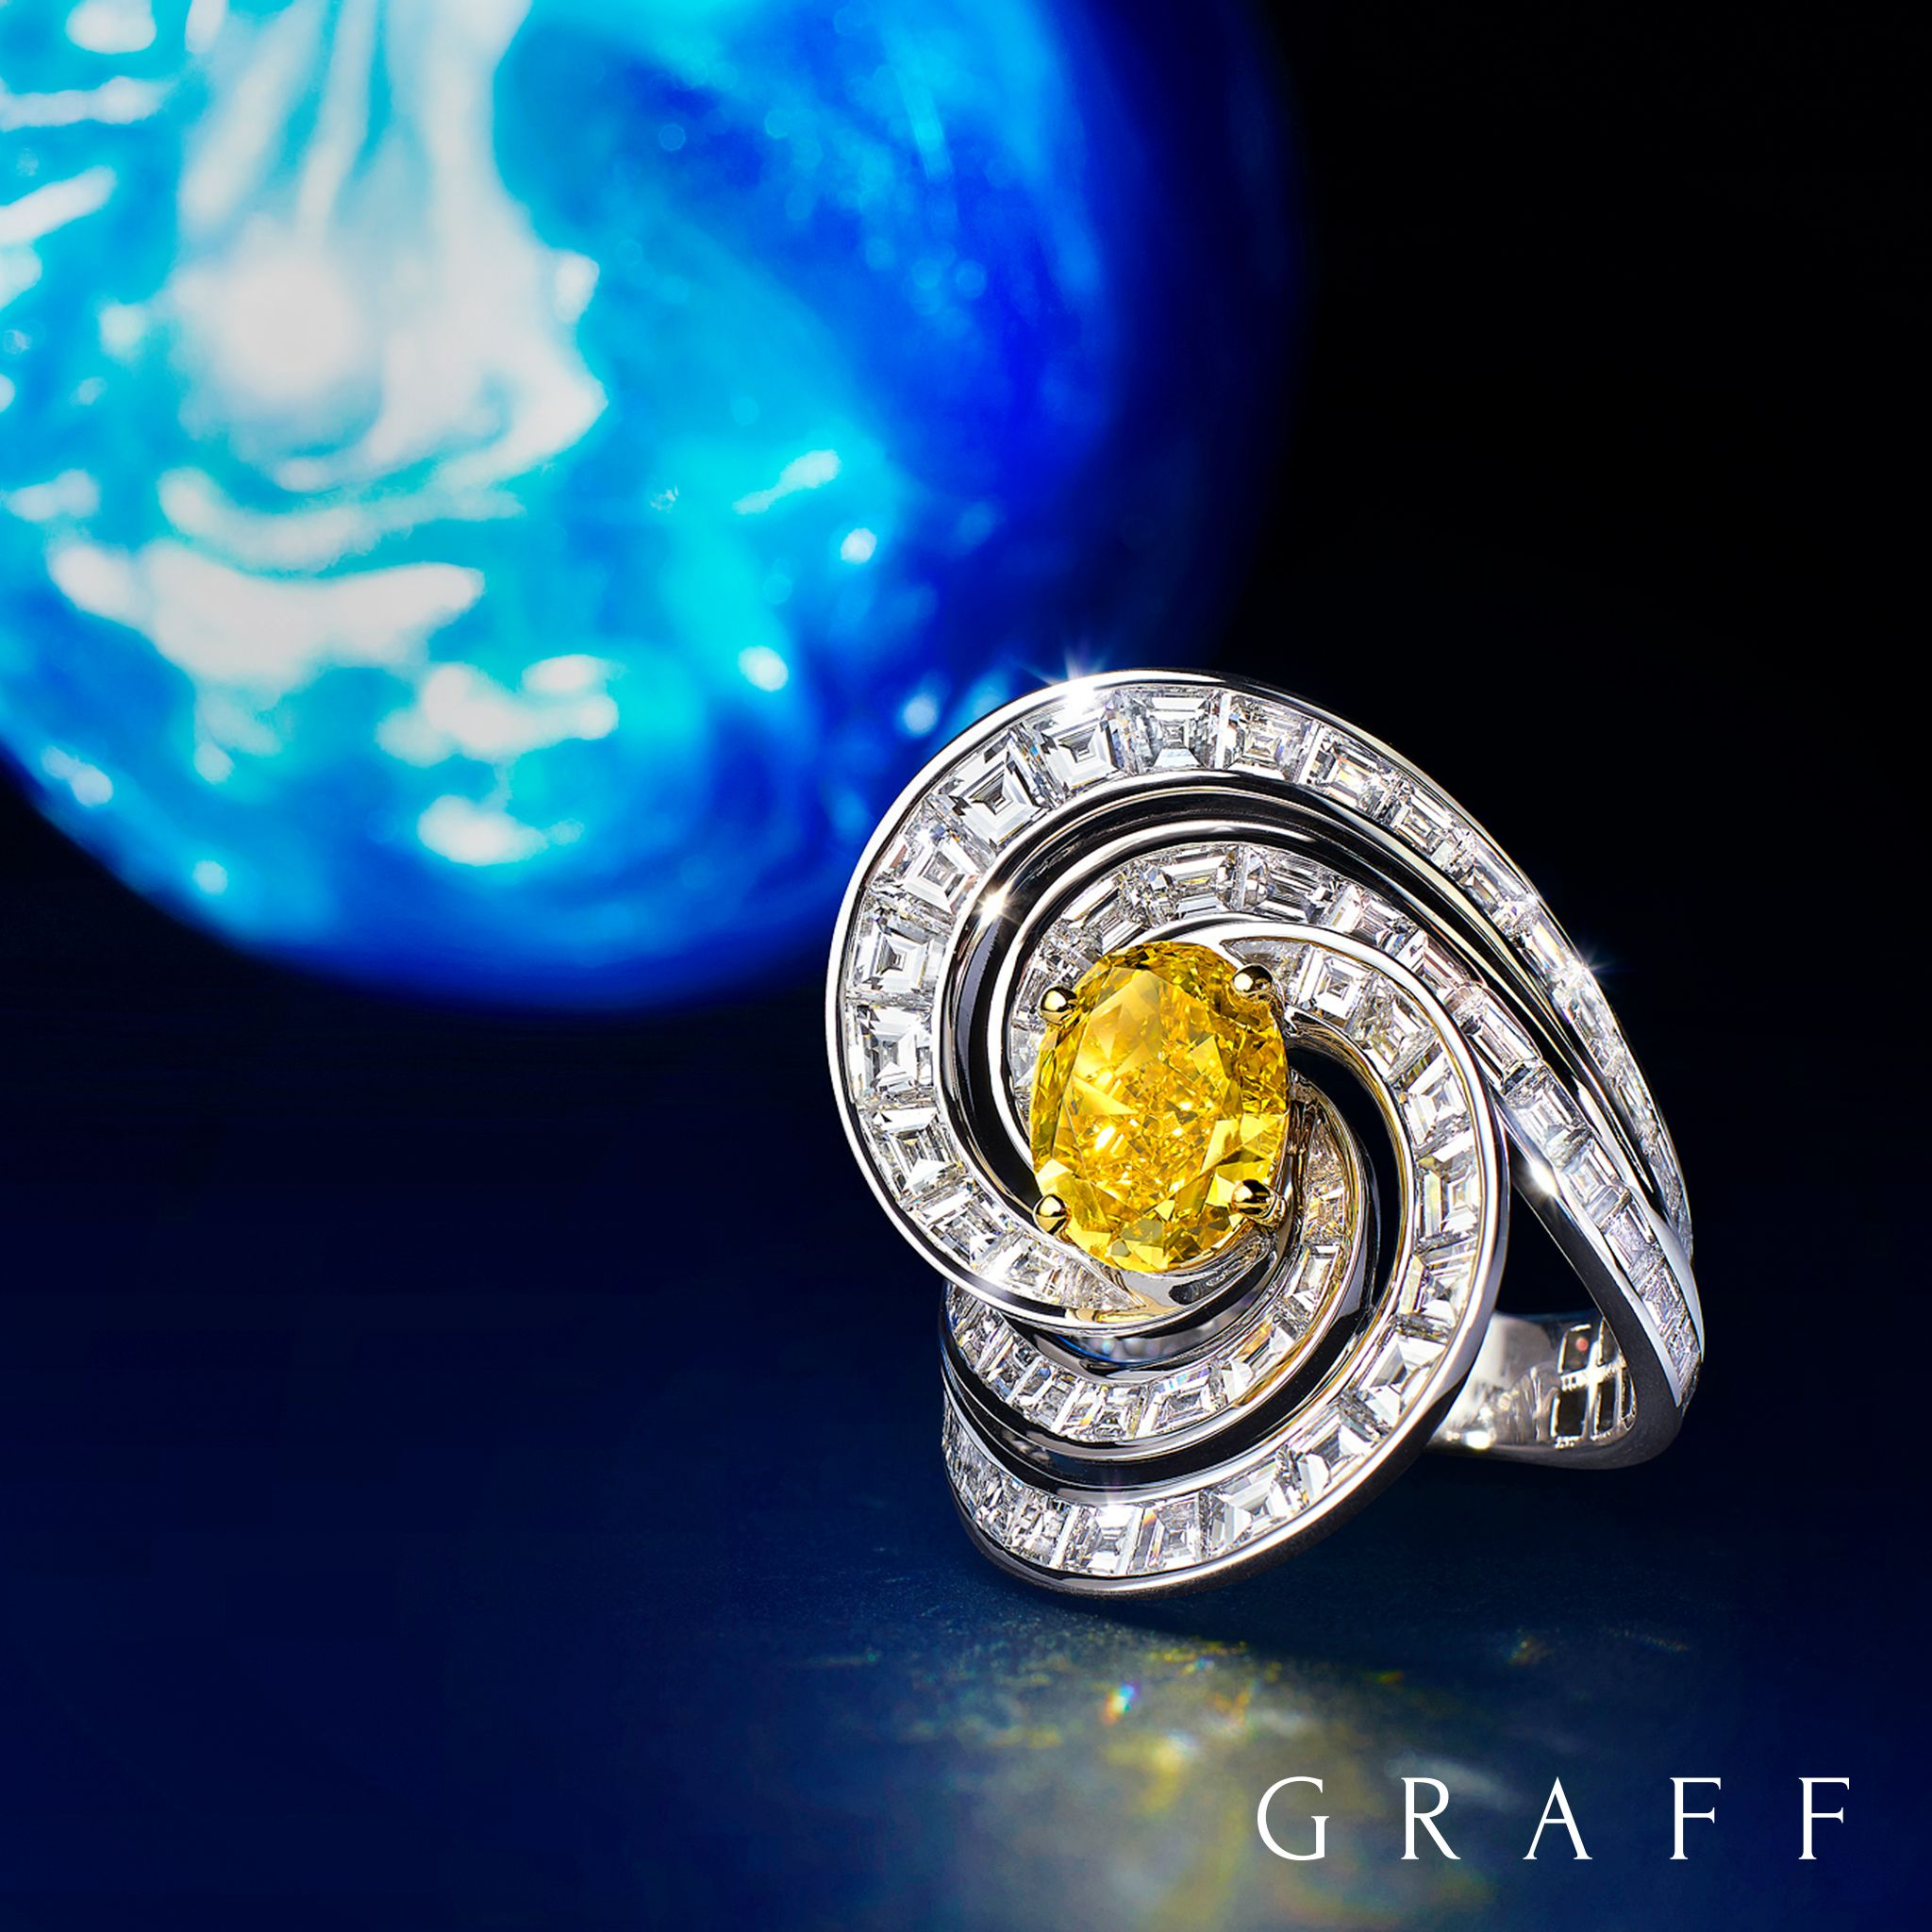 white pear ring and halo raidant collections high cut diamond of jewellery scintillation ct graff intense yellow featuring radiant a fancy fiy